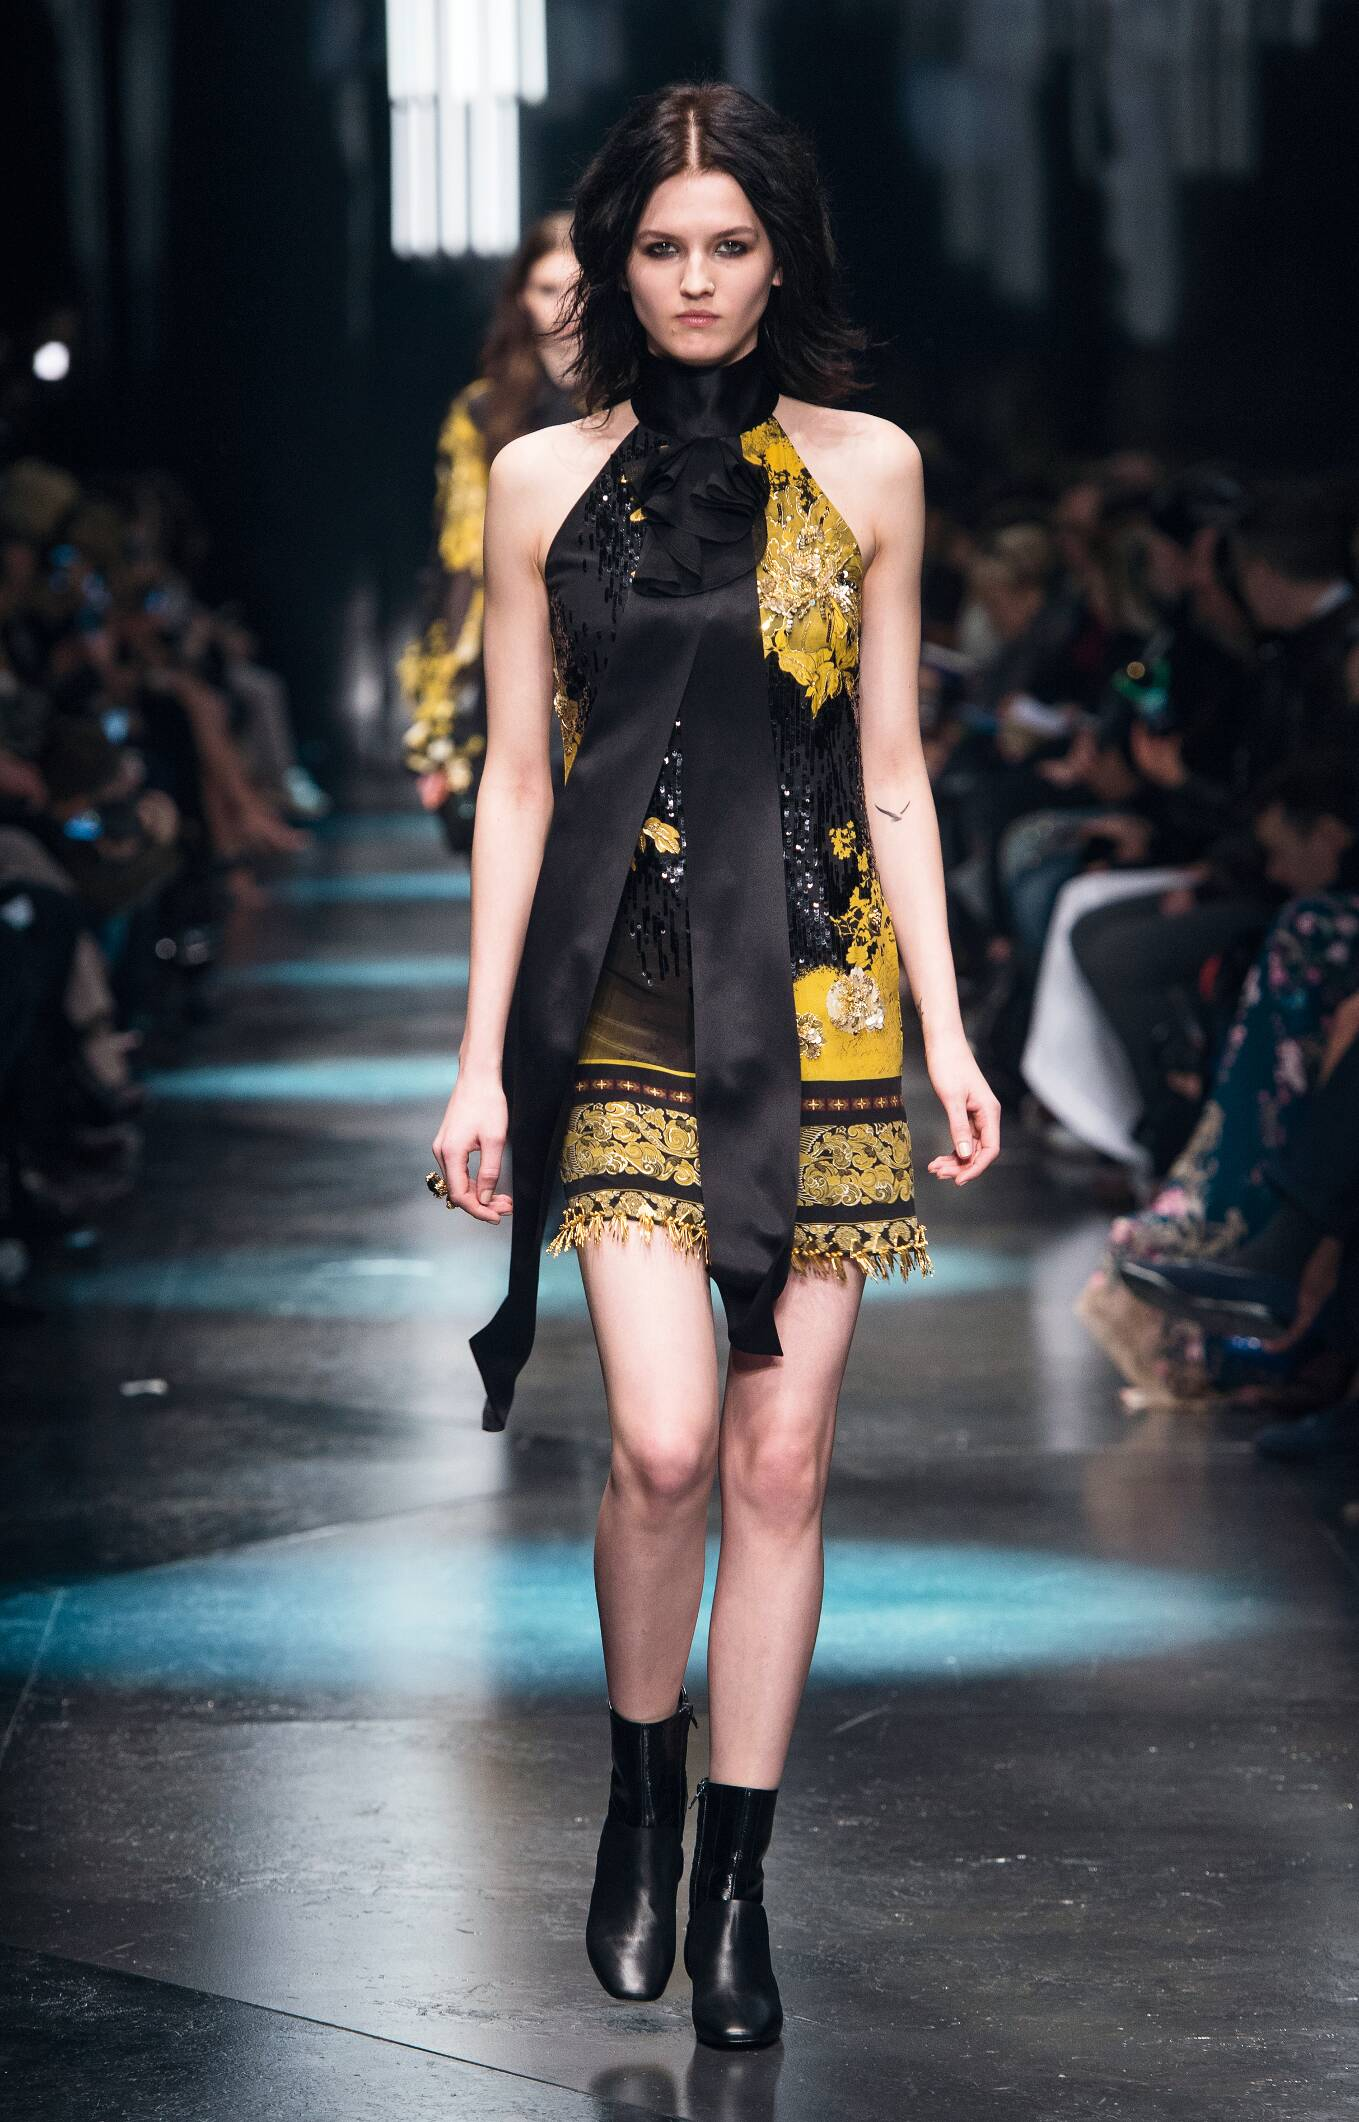 Roberto Cavalli Fall Winter 2015 16 Womenswear Collection Milan Fashion Week Fashion Show